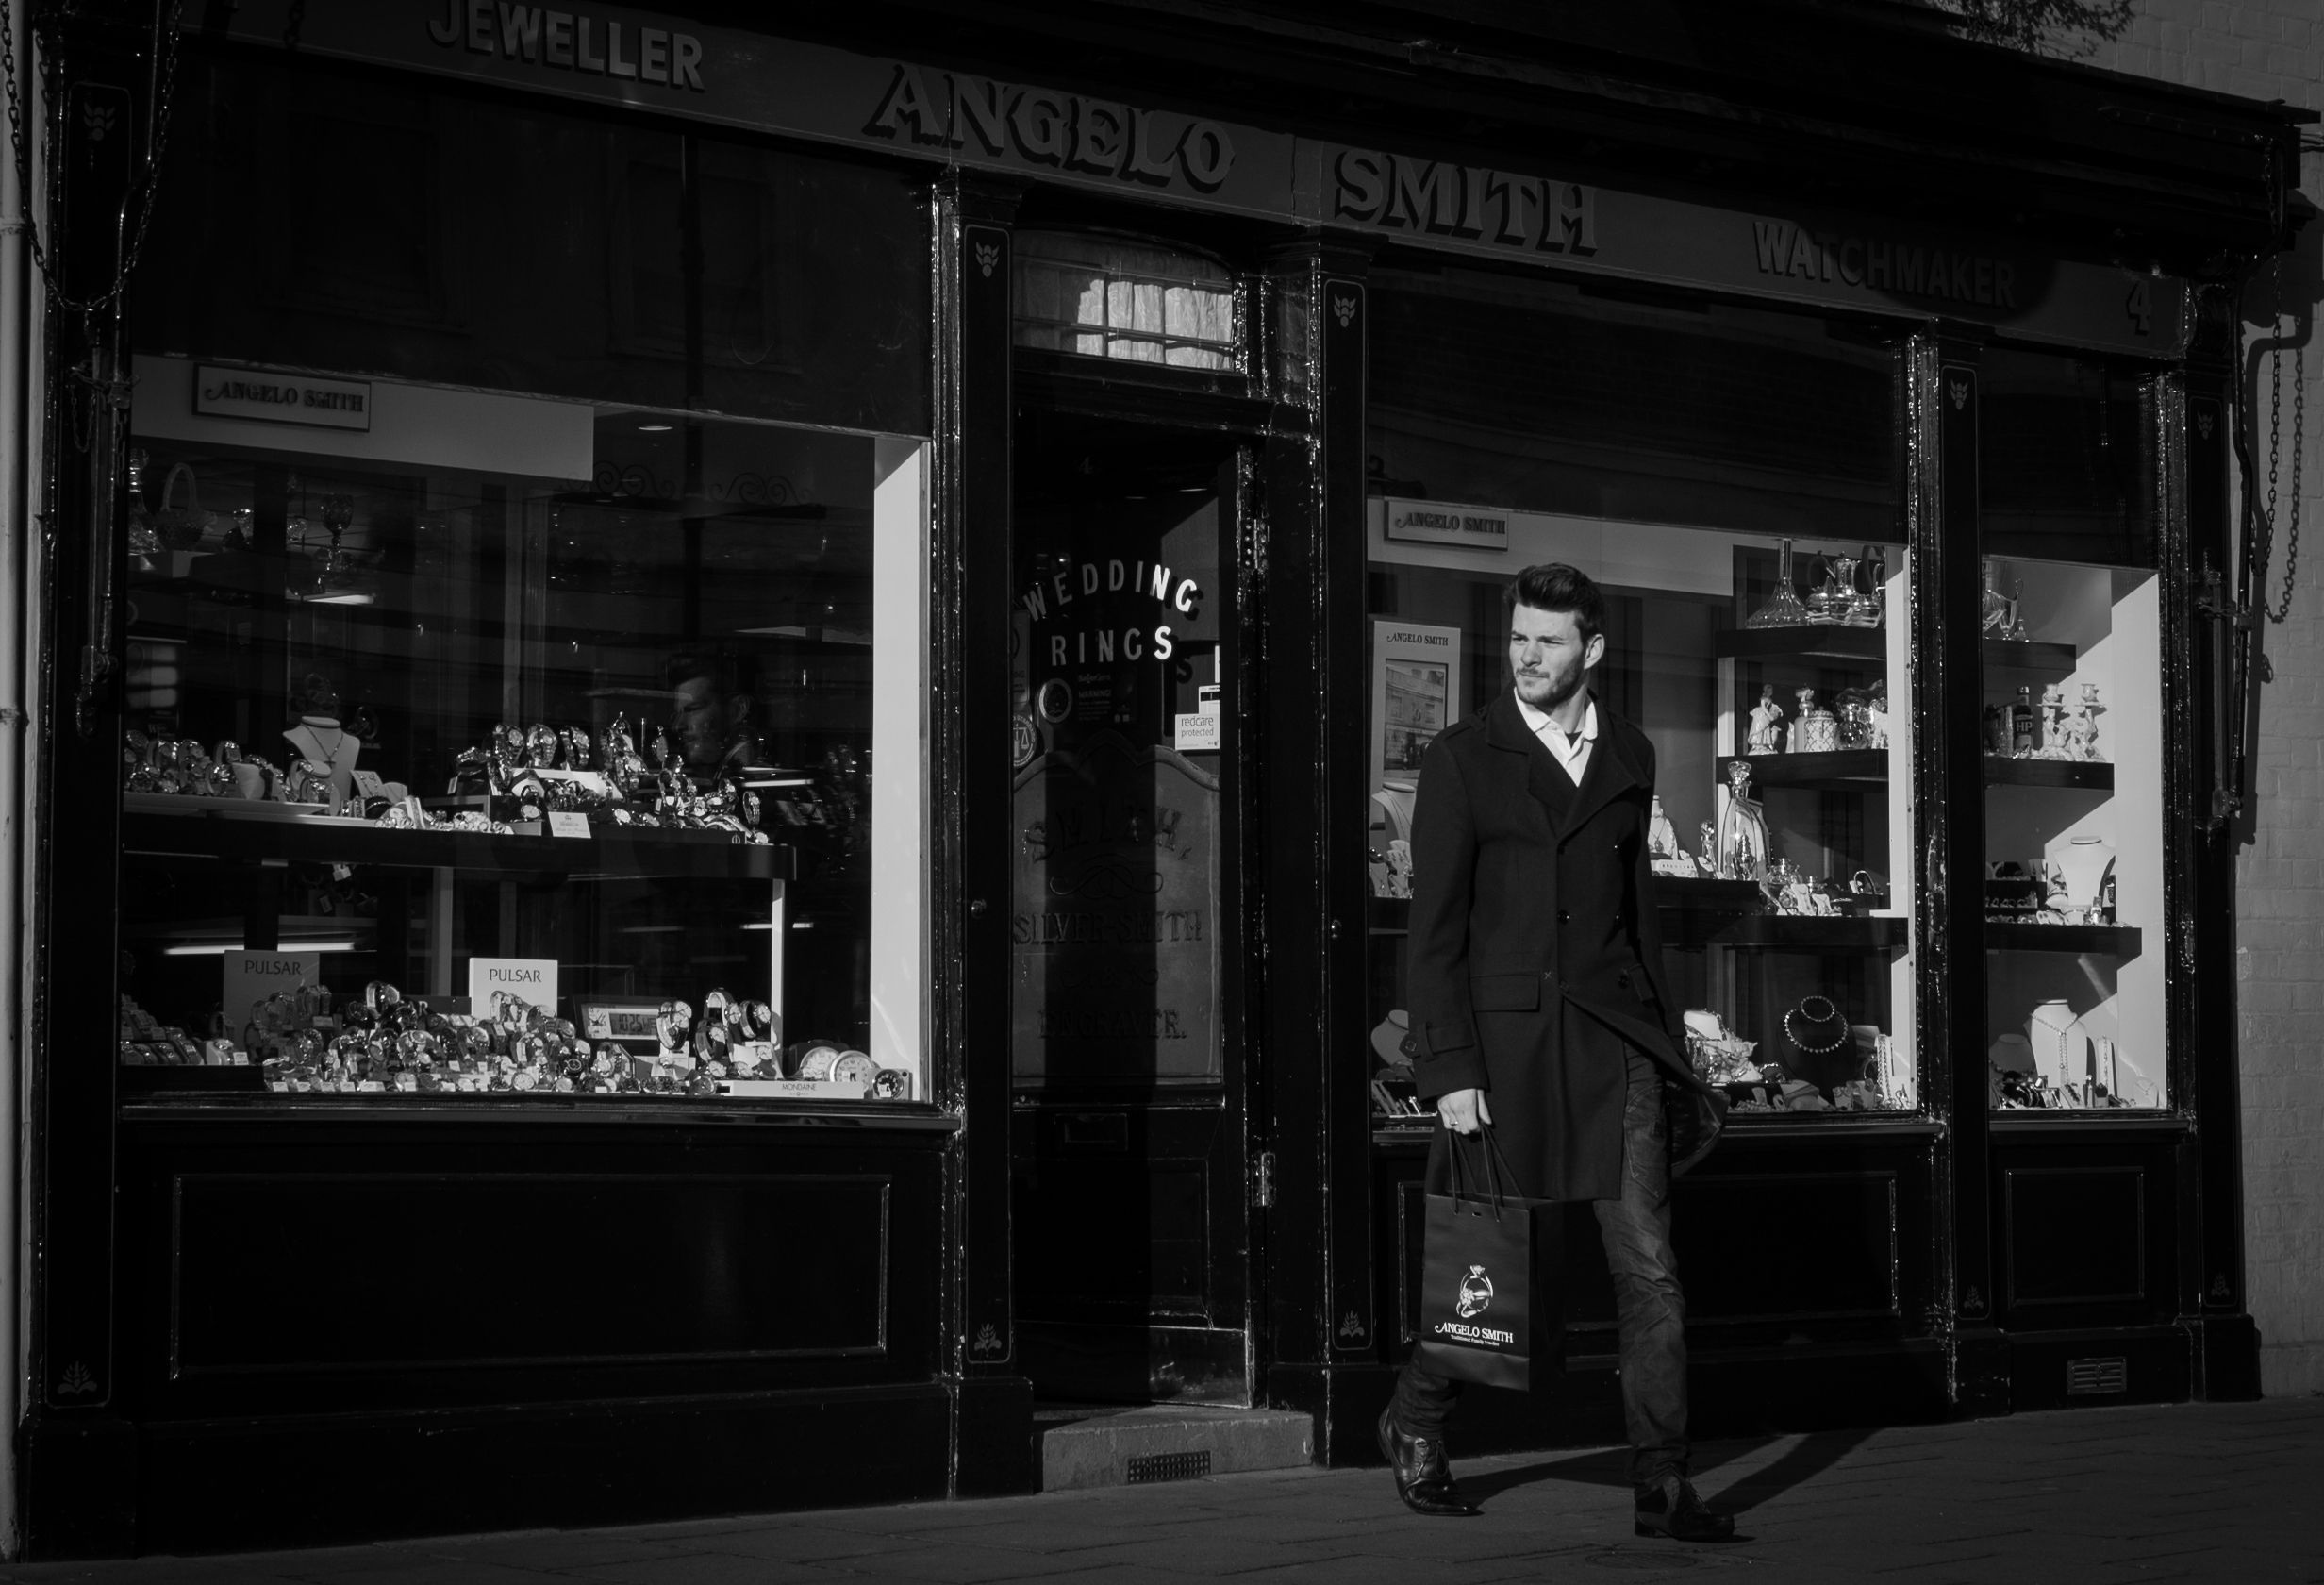 A monochrome image of a male customer leaving the showroom with an Angelo Smith branded bag in his hand.